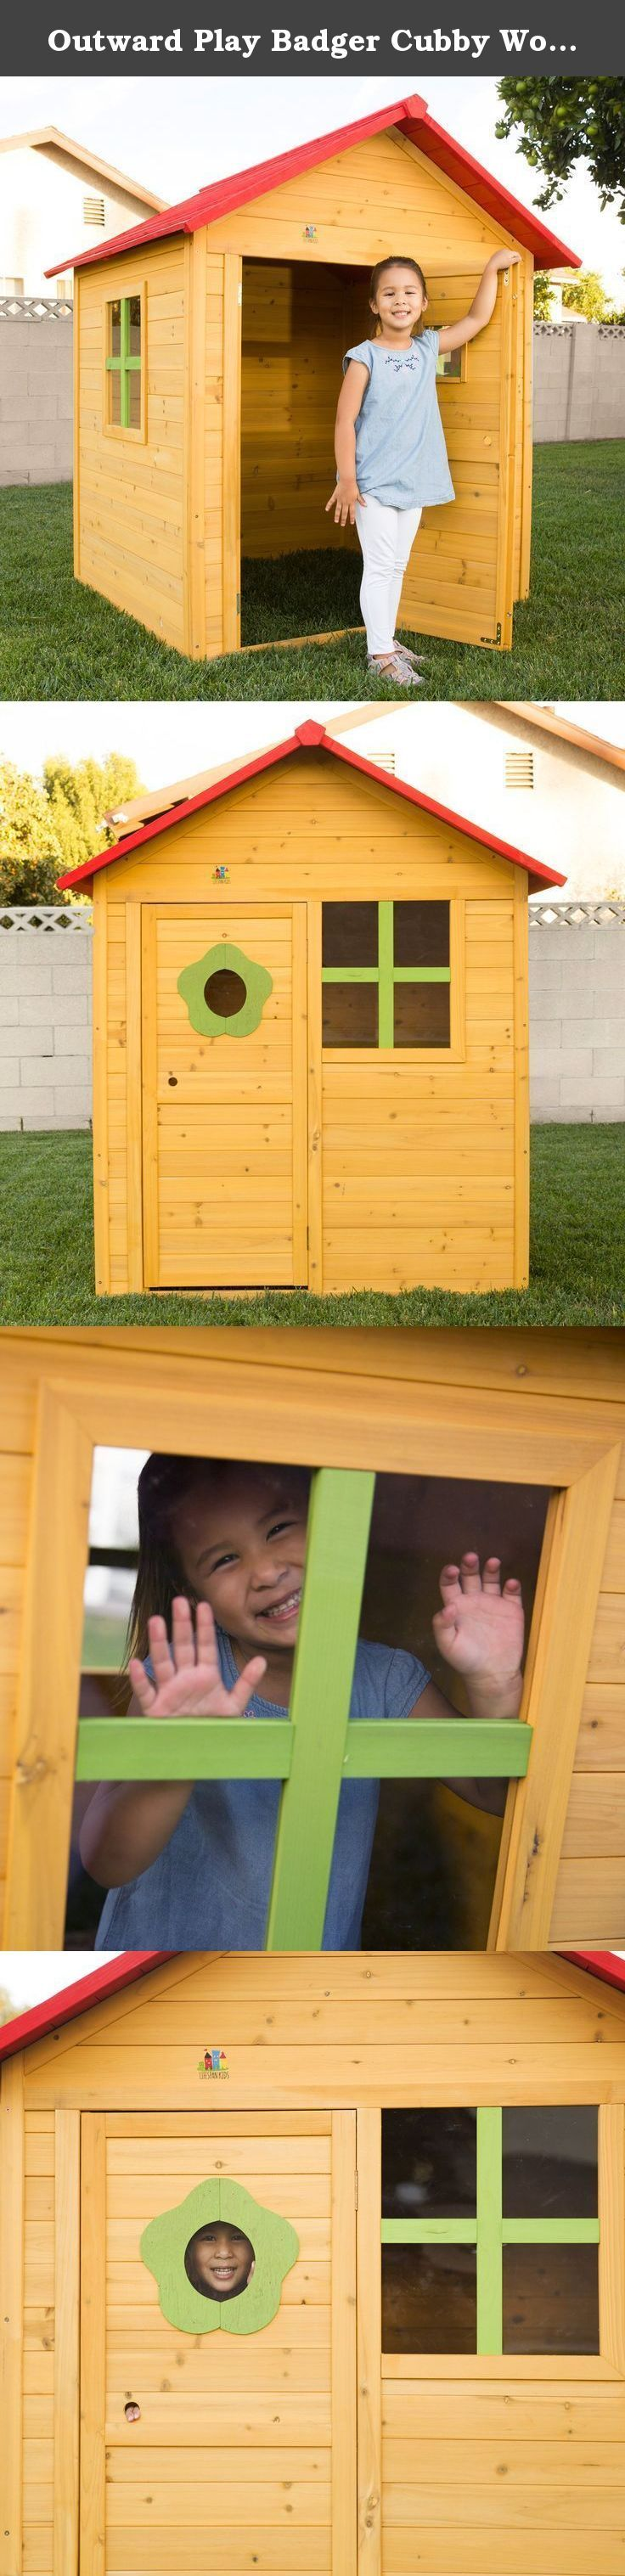 outward play badger cubby wood playhouse stylish and spacious